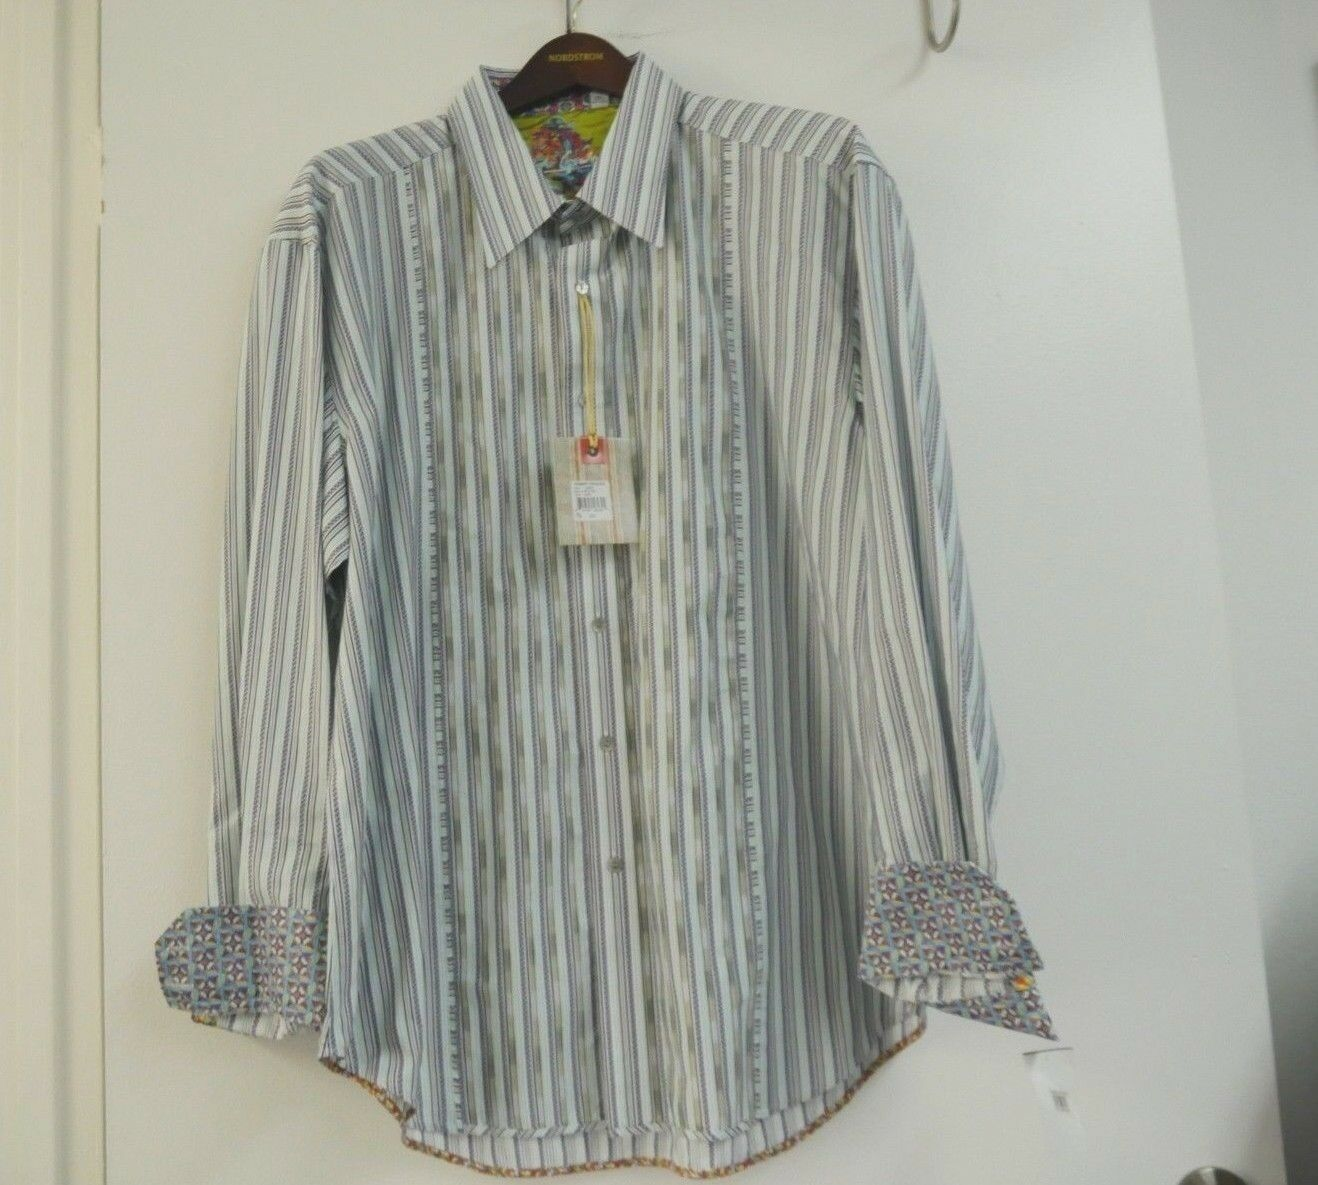 Nordstrom Robert Graham Grün Grau Lisbon EmbroideROT Striped Shirt2XL 258